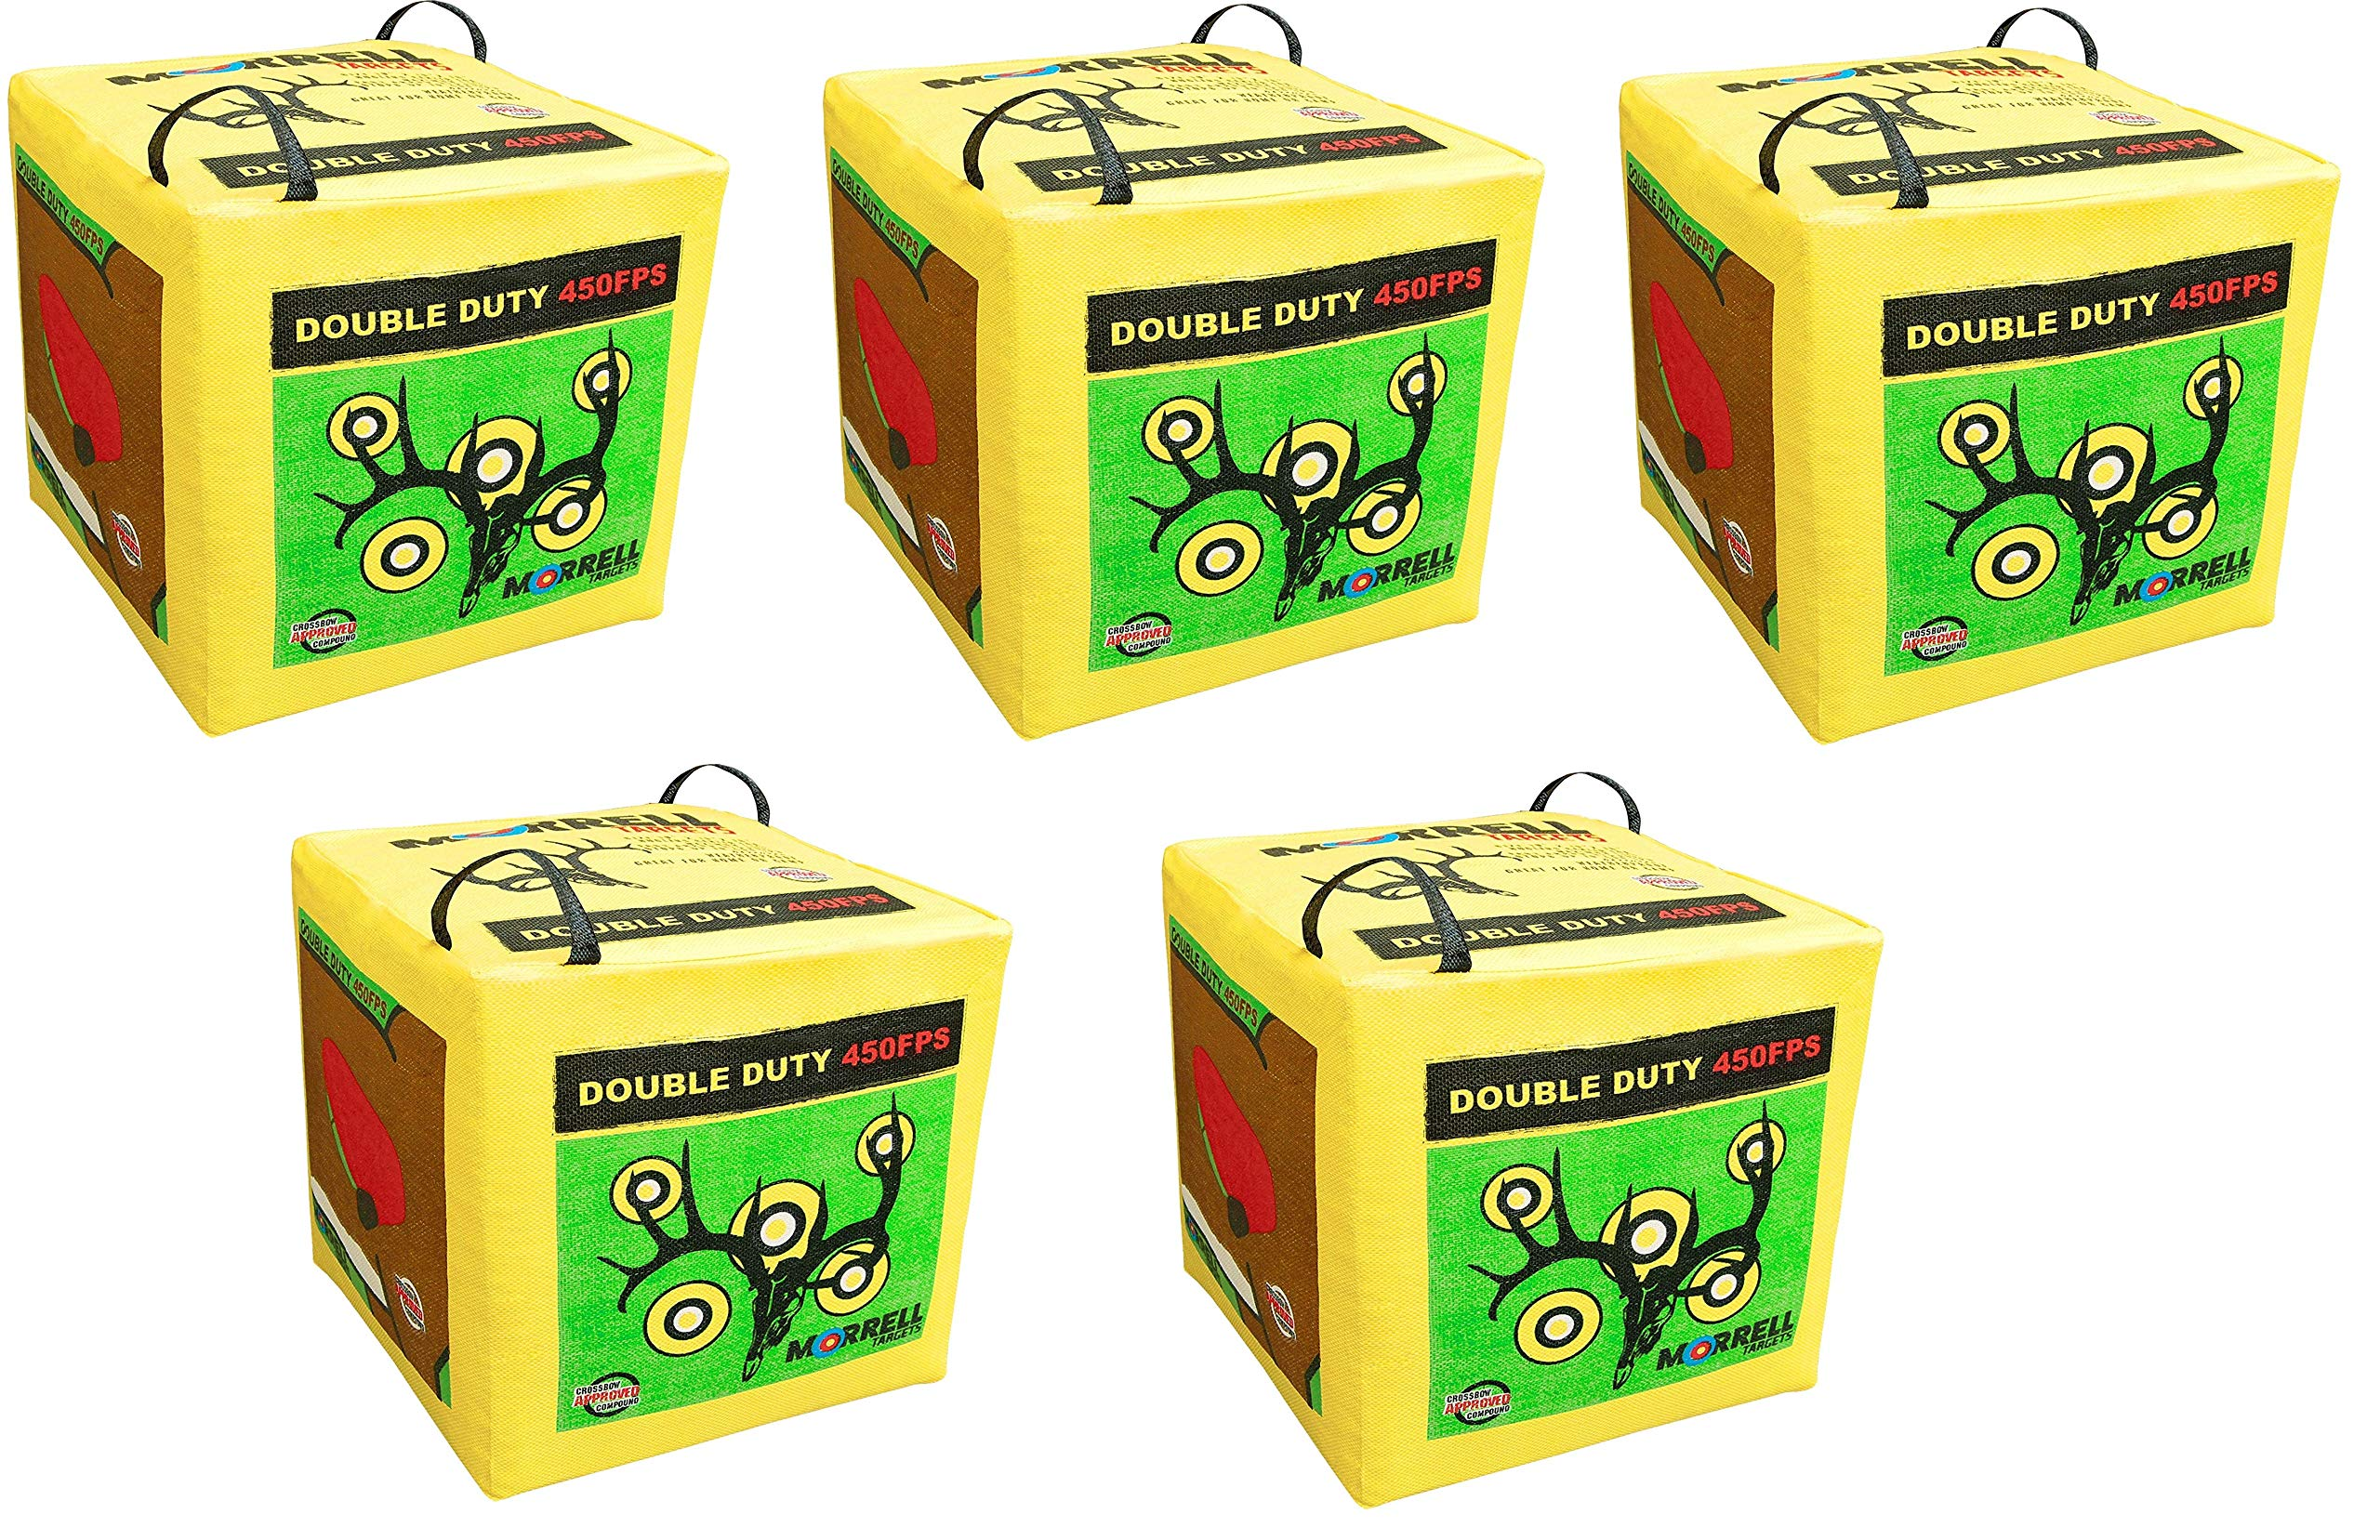 Morrell Double Duty 450FPS Field Point Bag Archery Target - for Crossbows, Compounds, Traditional Bows and Airbows (5-Pack)